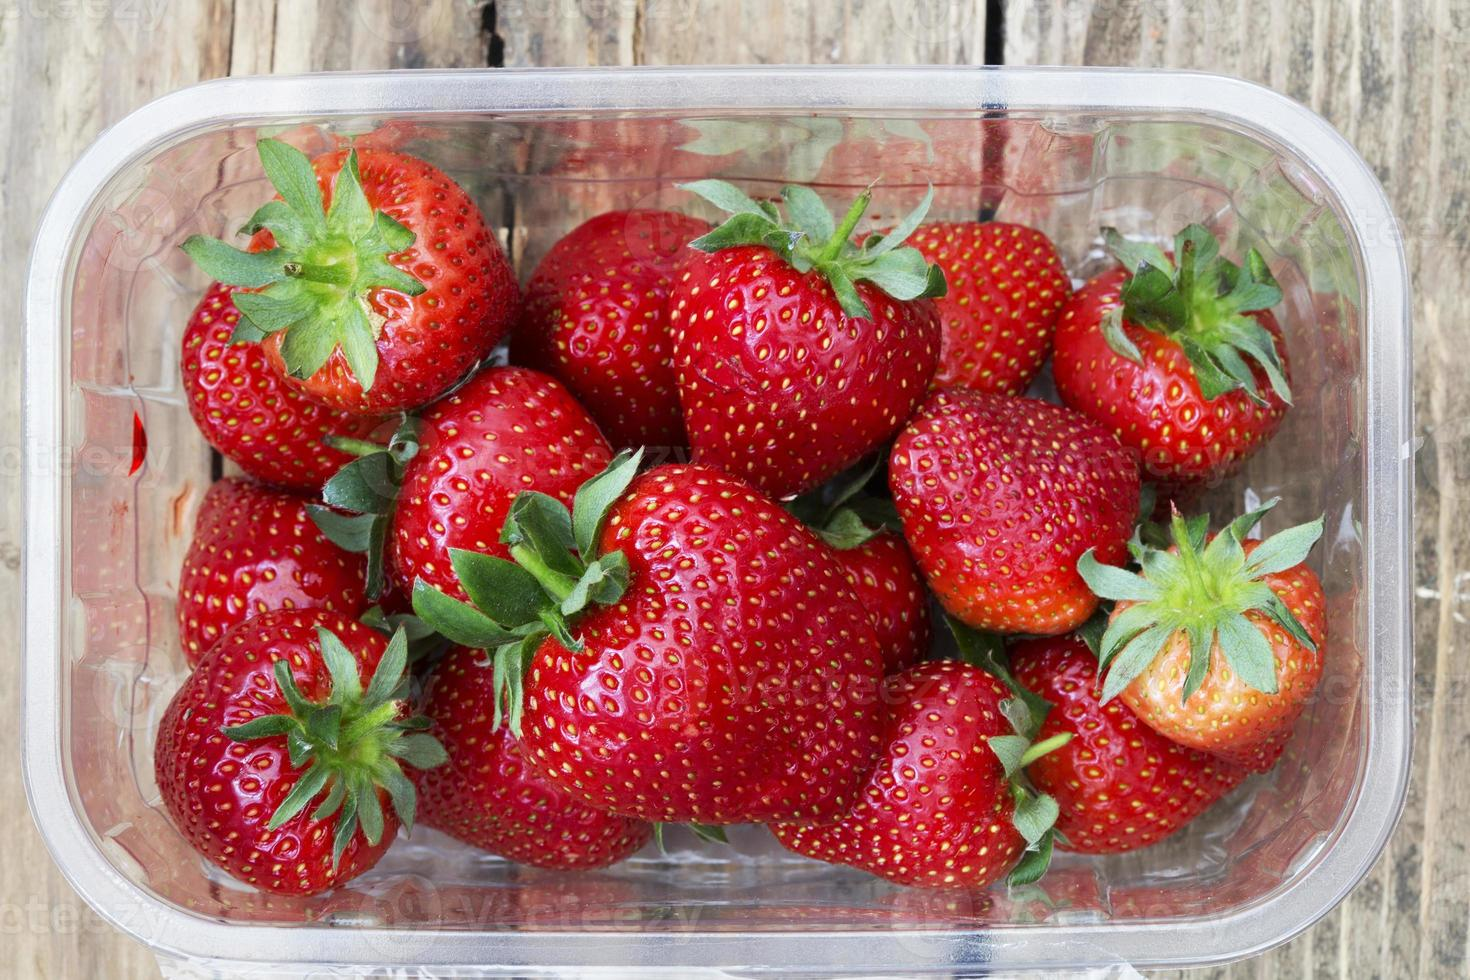 punnet of frshly icked strawberries photo